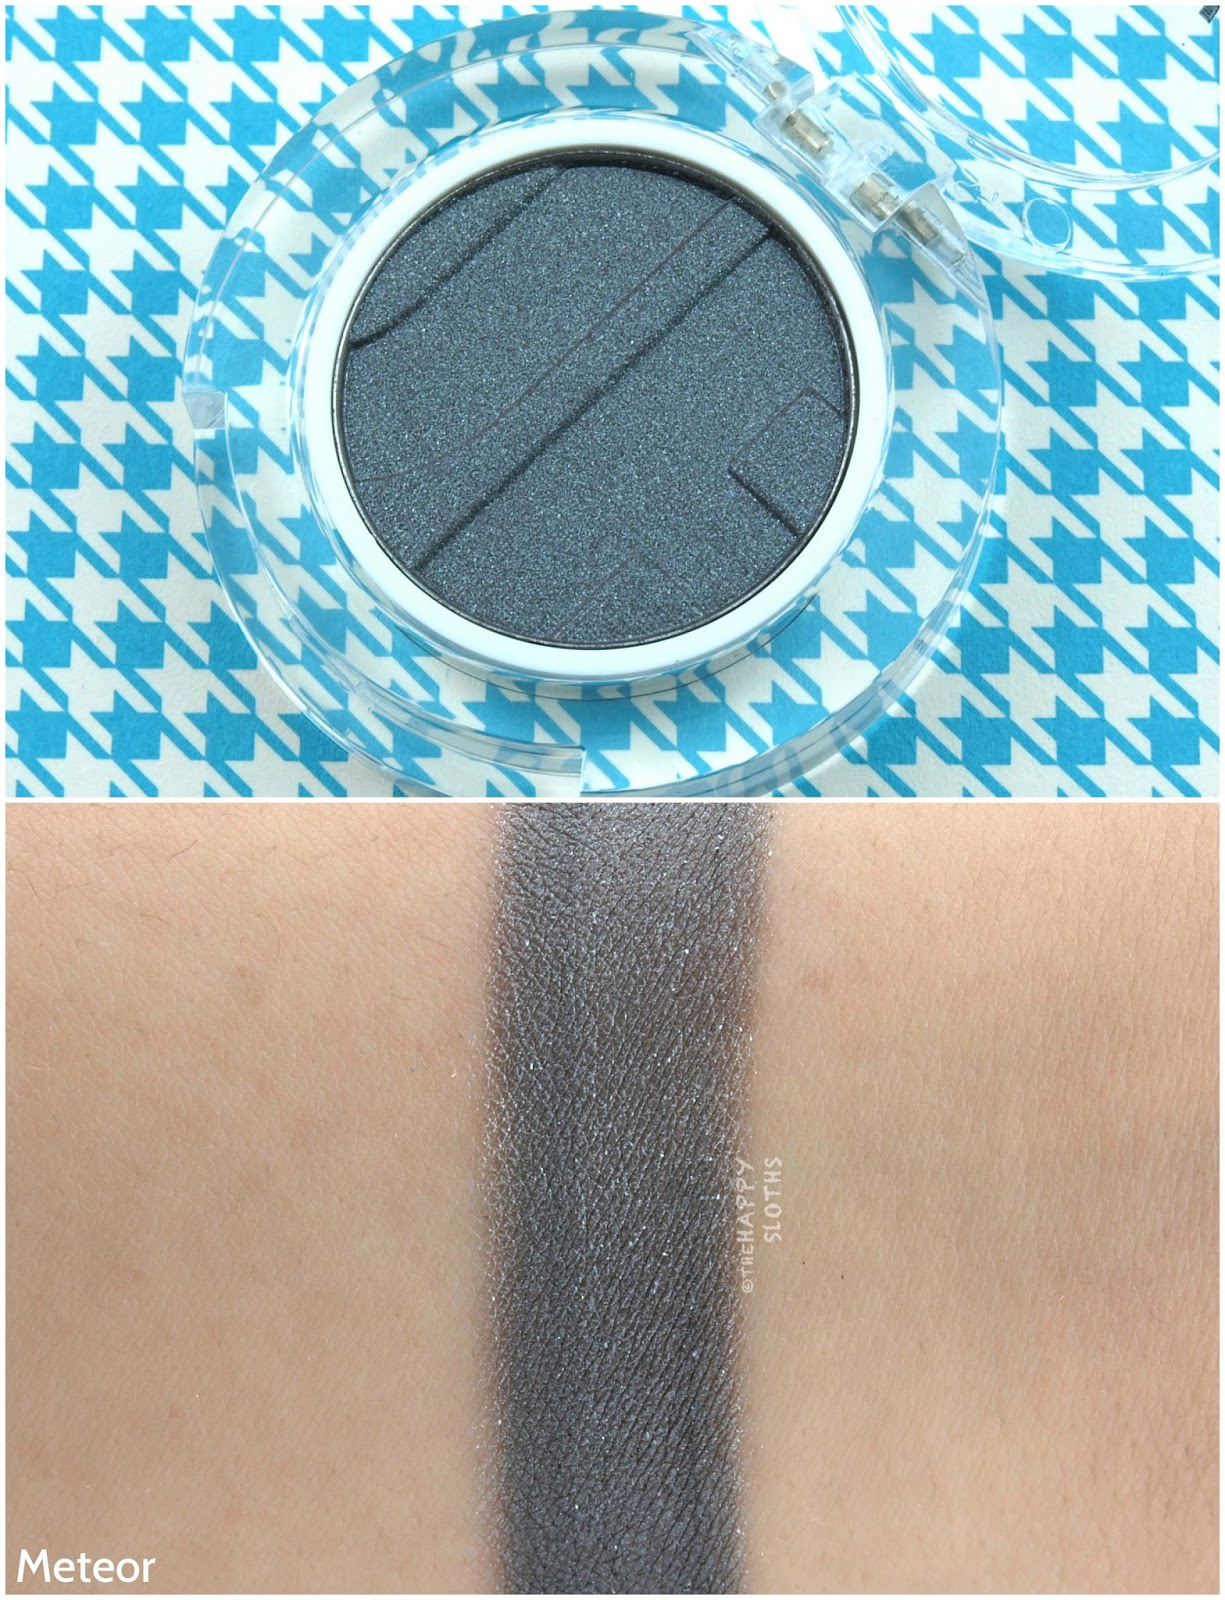 Joe Fresh Beauty Single Eyeshadow in Meteor: Review and Swatches